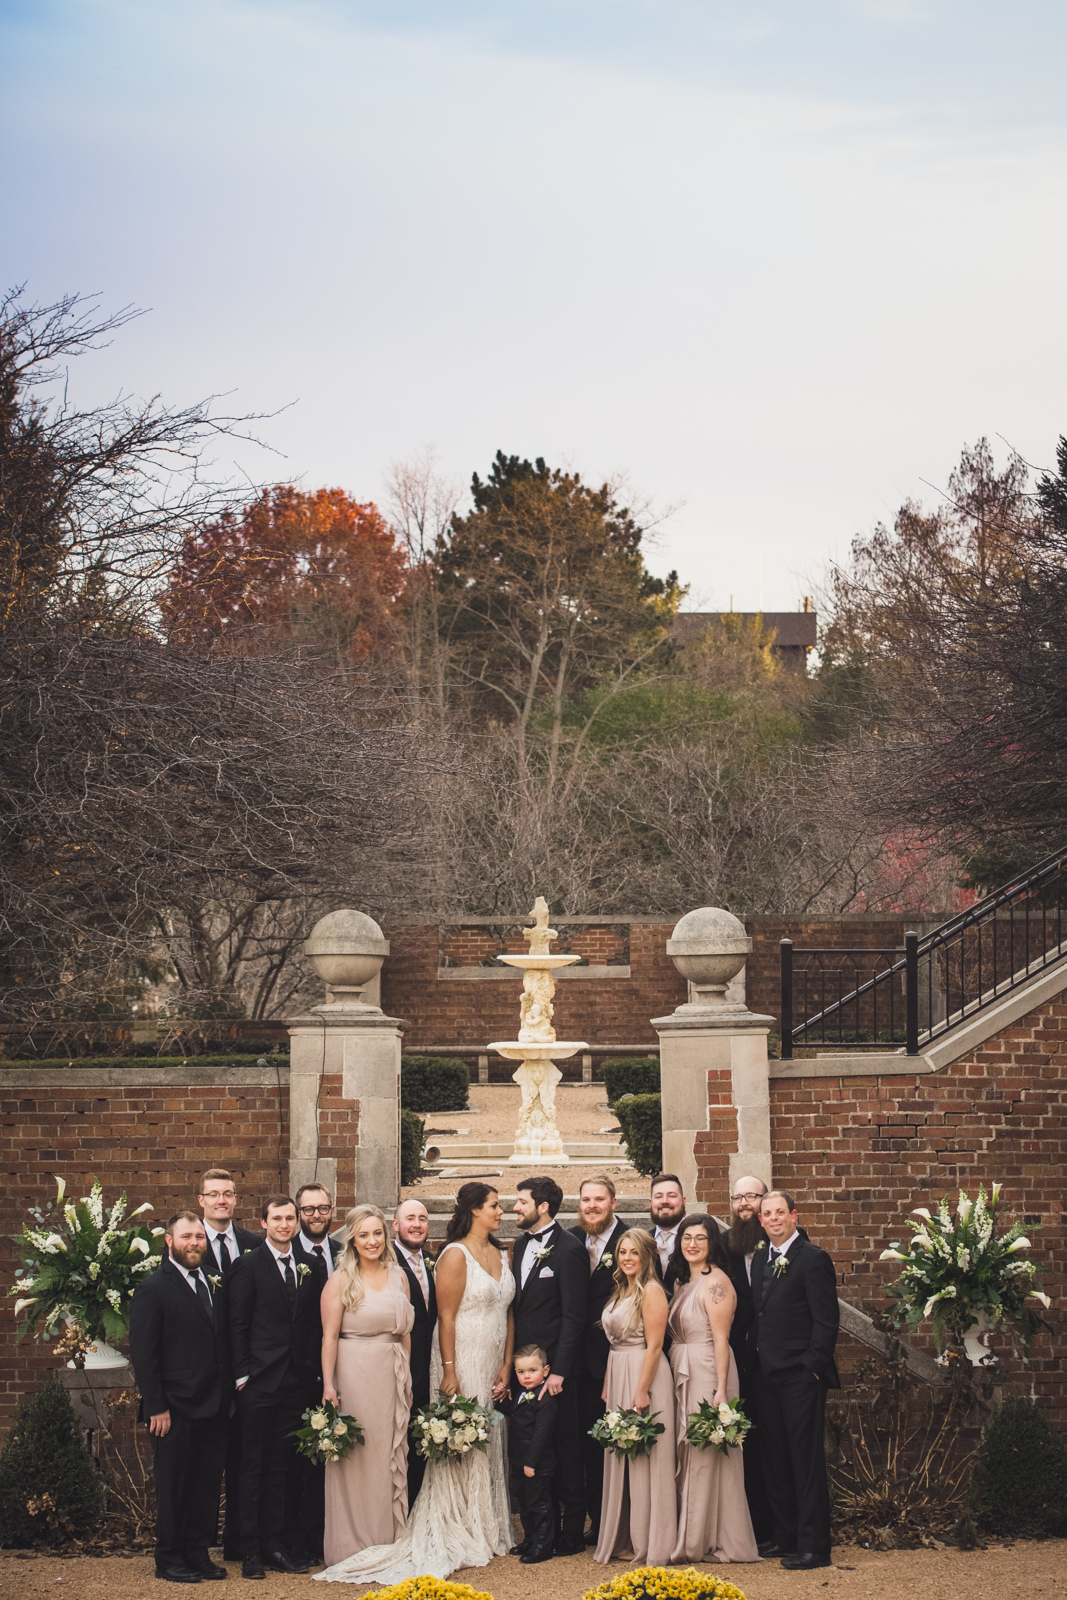 rollins-mansion-1266-wedding-photographer-des-moines-iowa-m-c.jpg